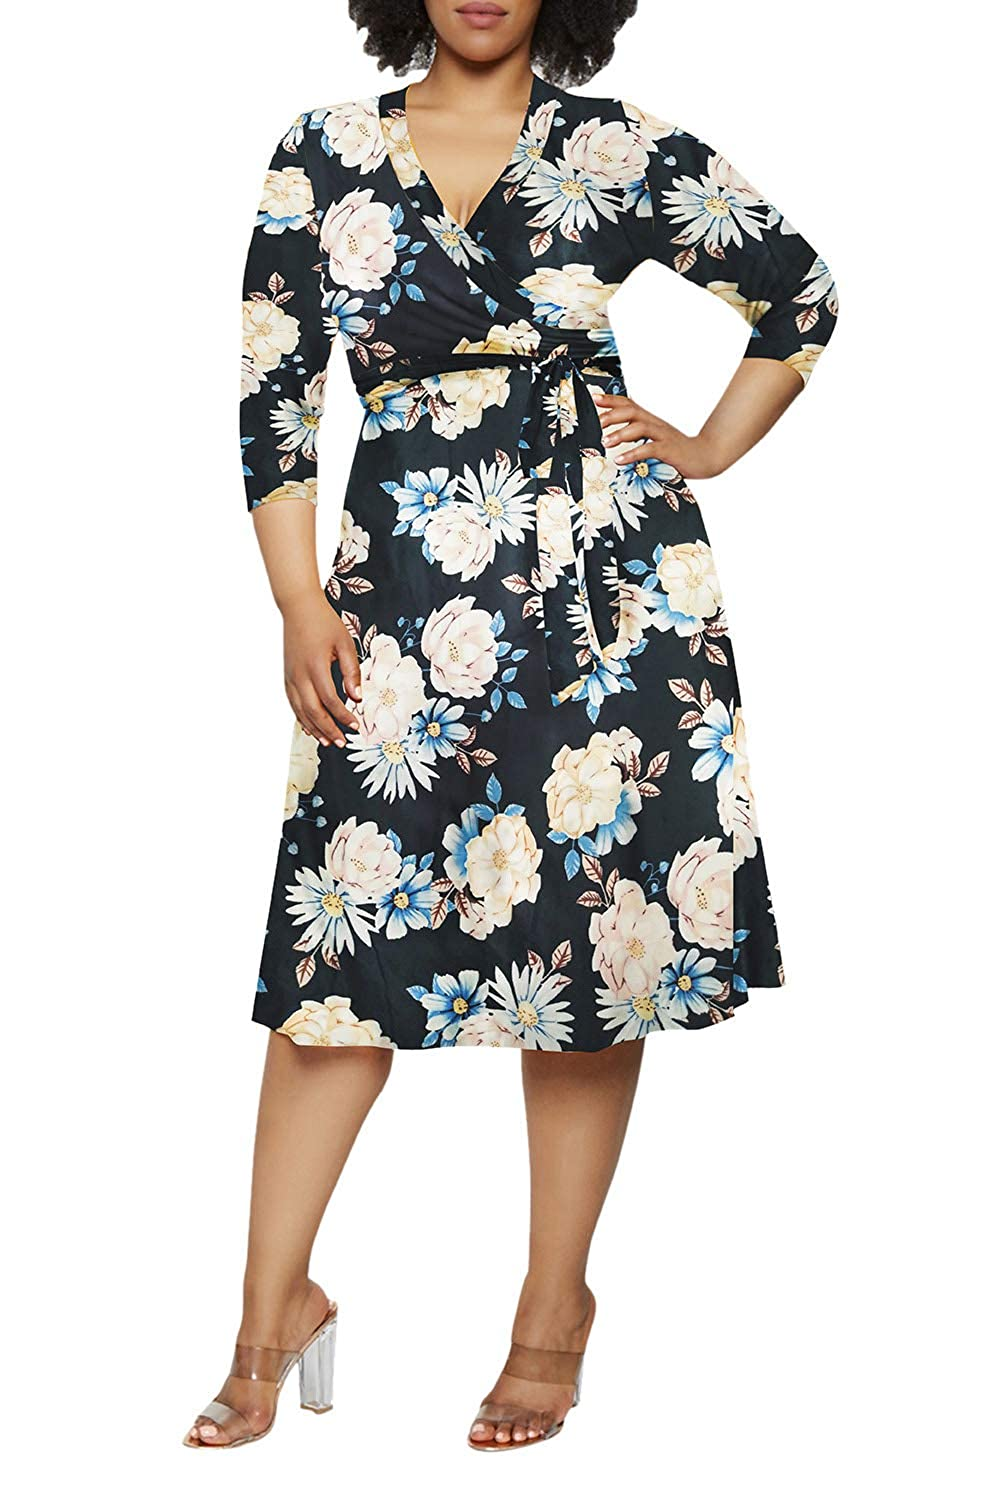 1948b77a701 Pink Queen Women's Plus Size 3/4 Sleeve Faux Wrap Floral Dress with Belt